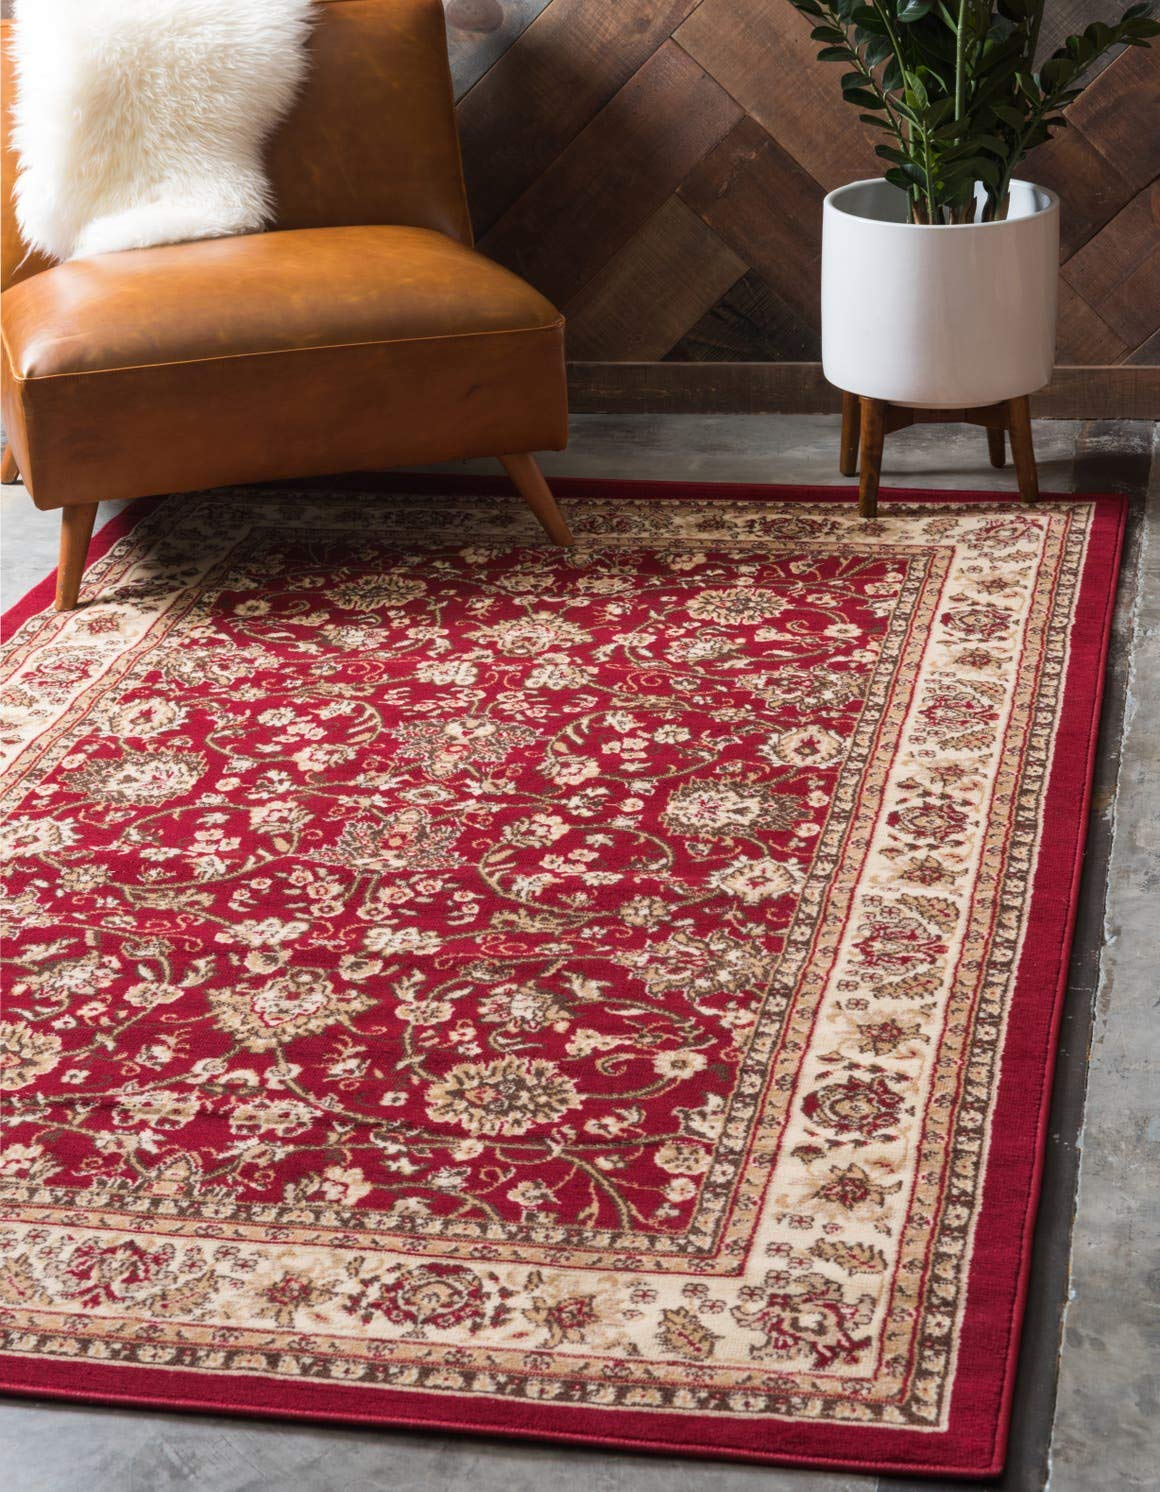 Unique Loom Kashan Collection Traditional Floral Overall Pattern with Border Burgundy Area Rug 4 0 x 6 0